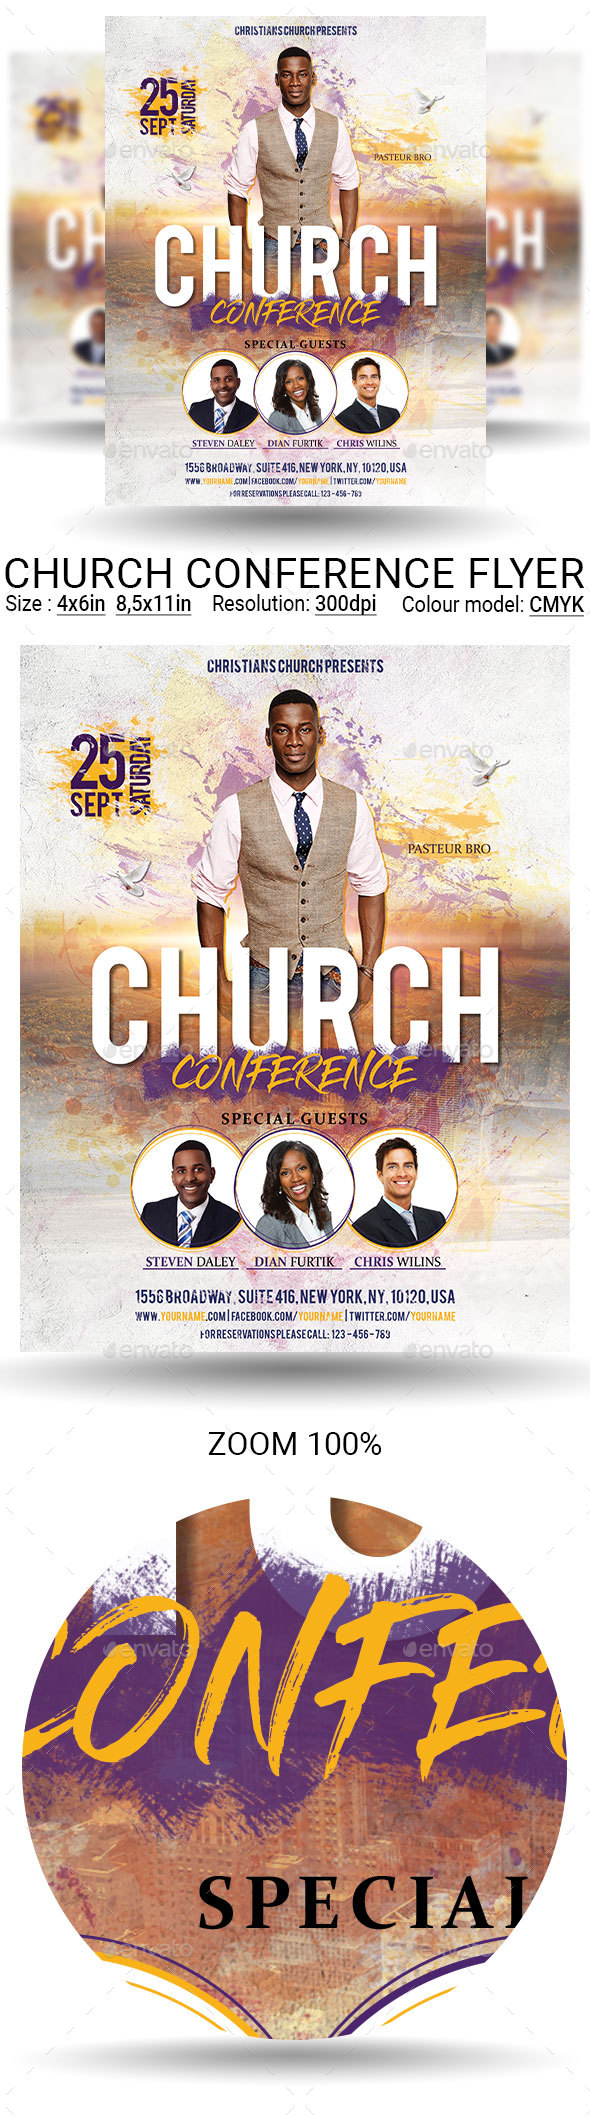 Church Conference Flyer Poster - Church Flyers